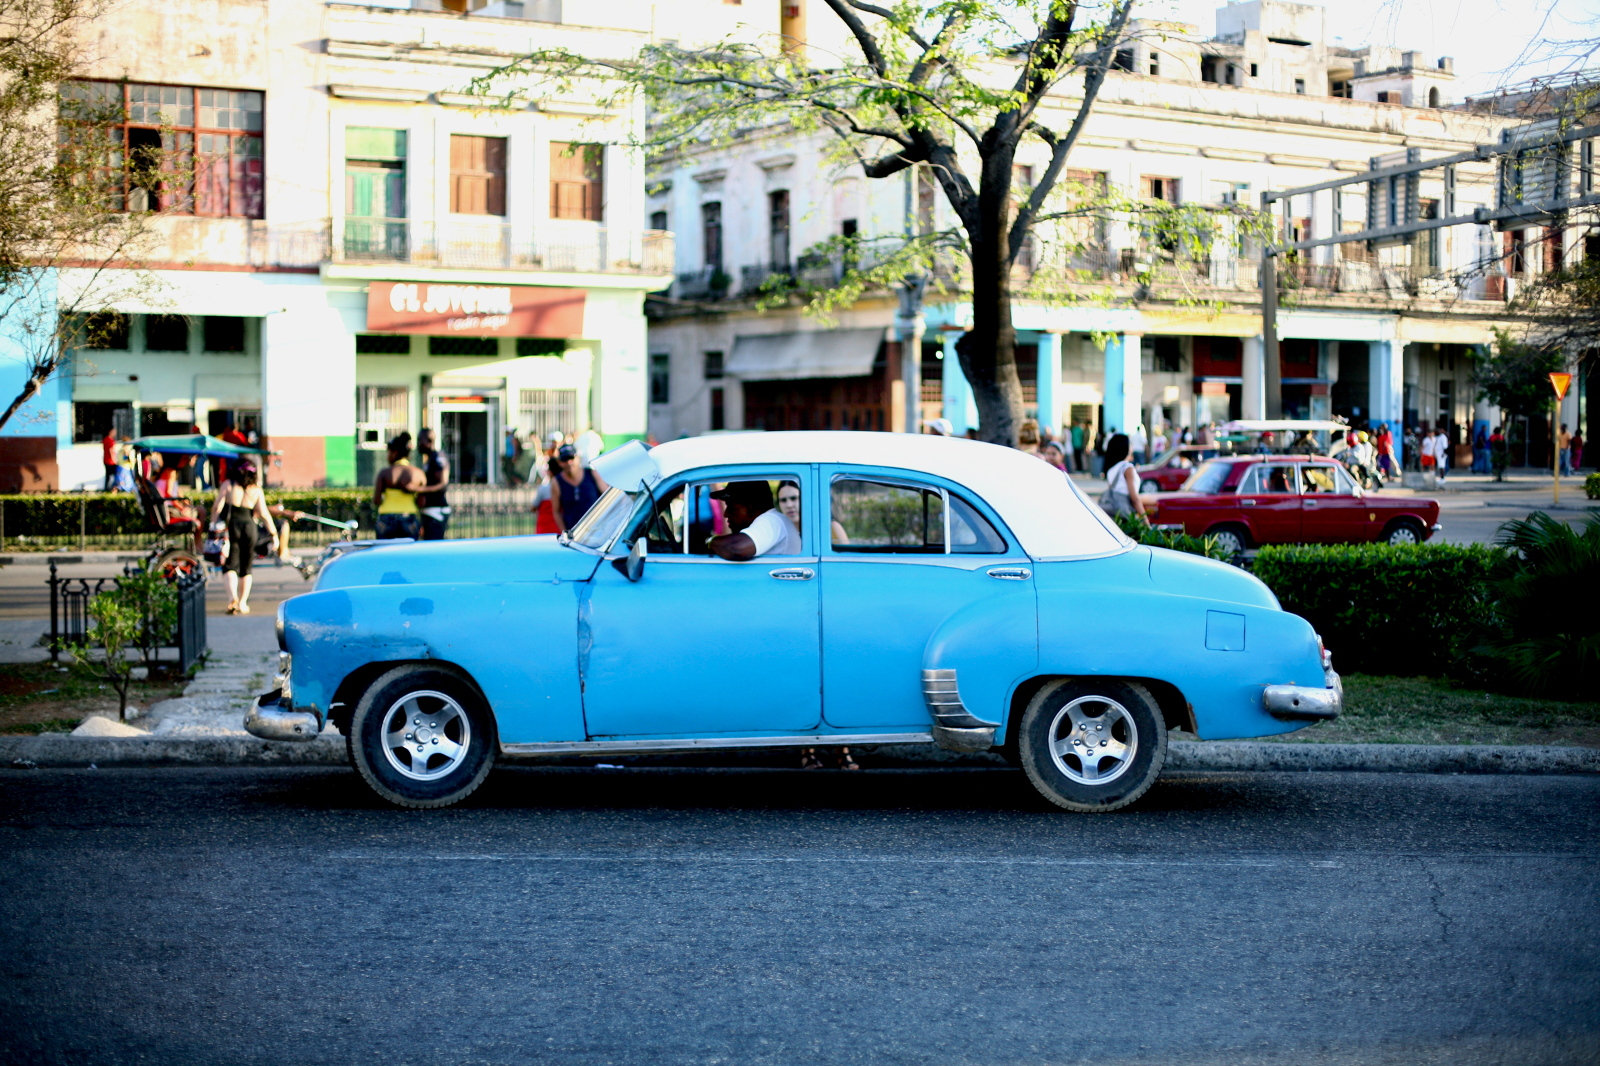 Geoff Reinhard  Taxi - Cuba  (Havana) 2012 archival pigment print 30 x 44 in. additional sizes available editions of 15